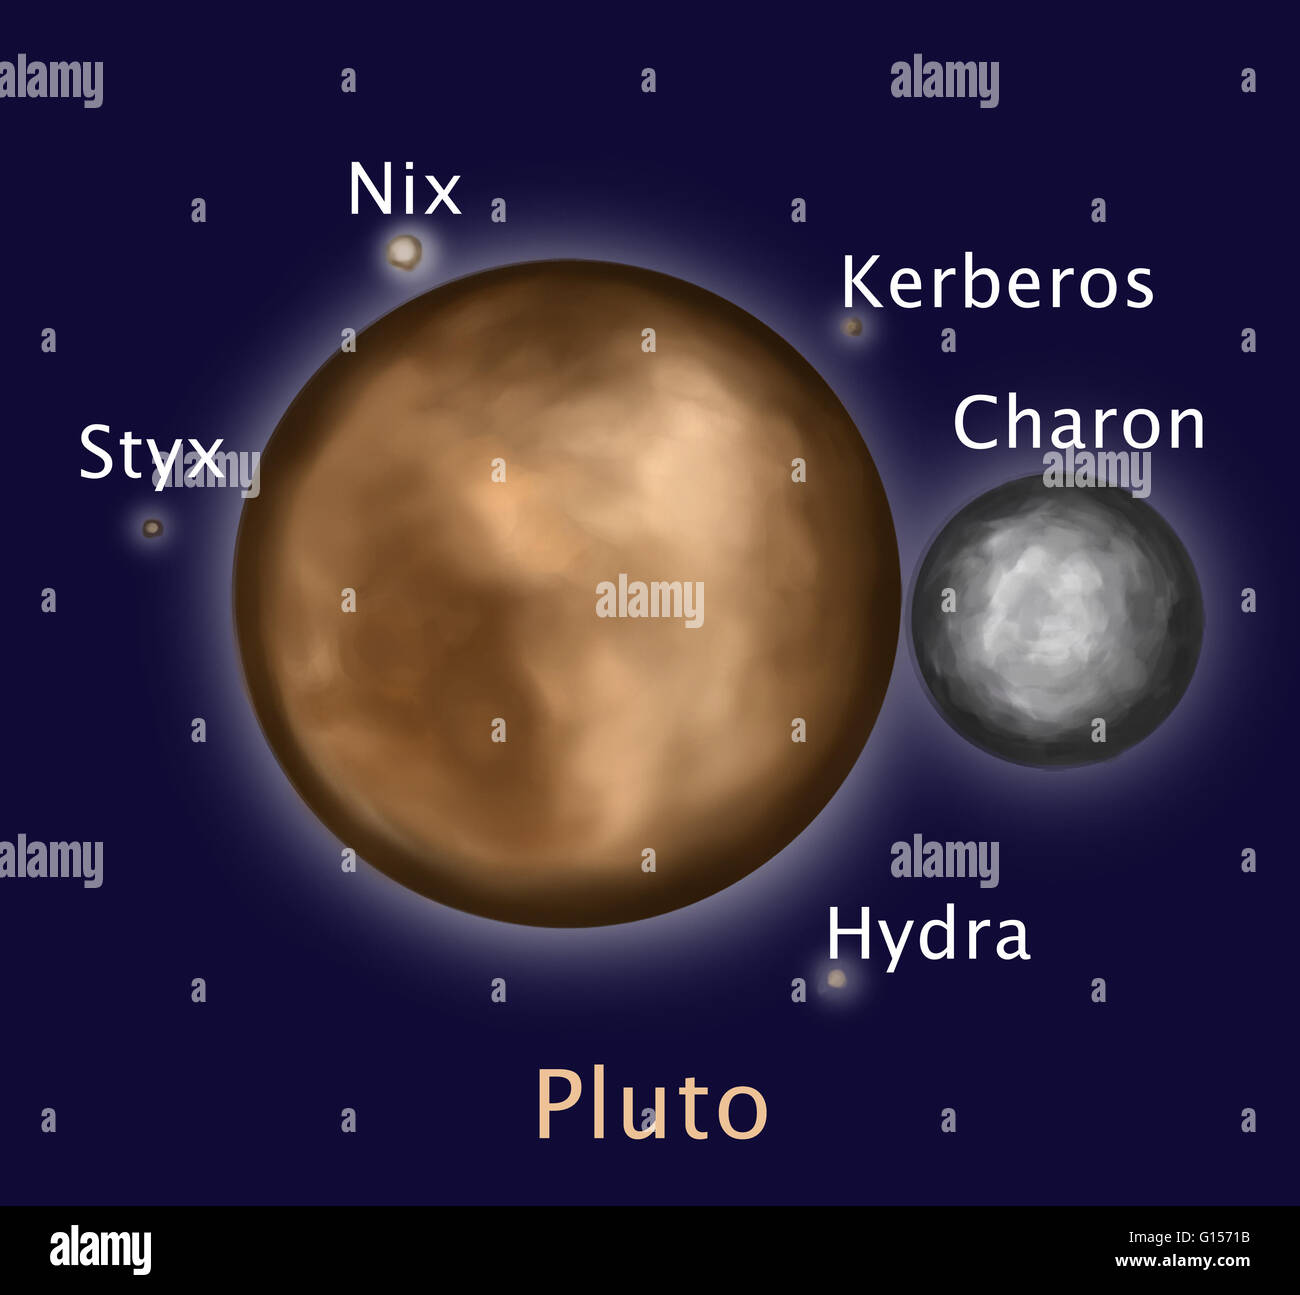 Kerberos Moon Of Plluto: Artwork Of Pluto, A Dwarf Planet, And It's 5 Known Moons